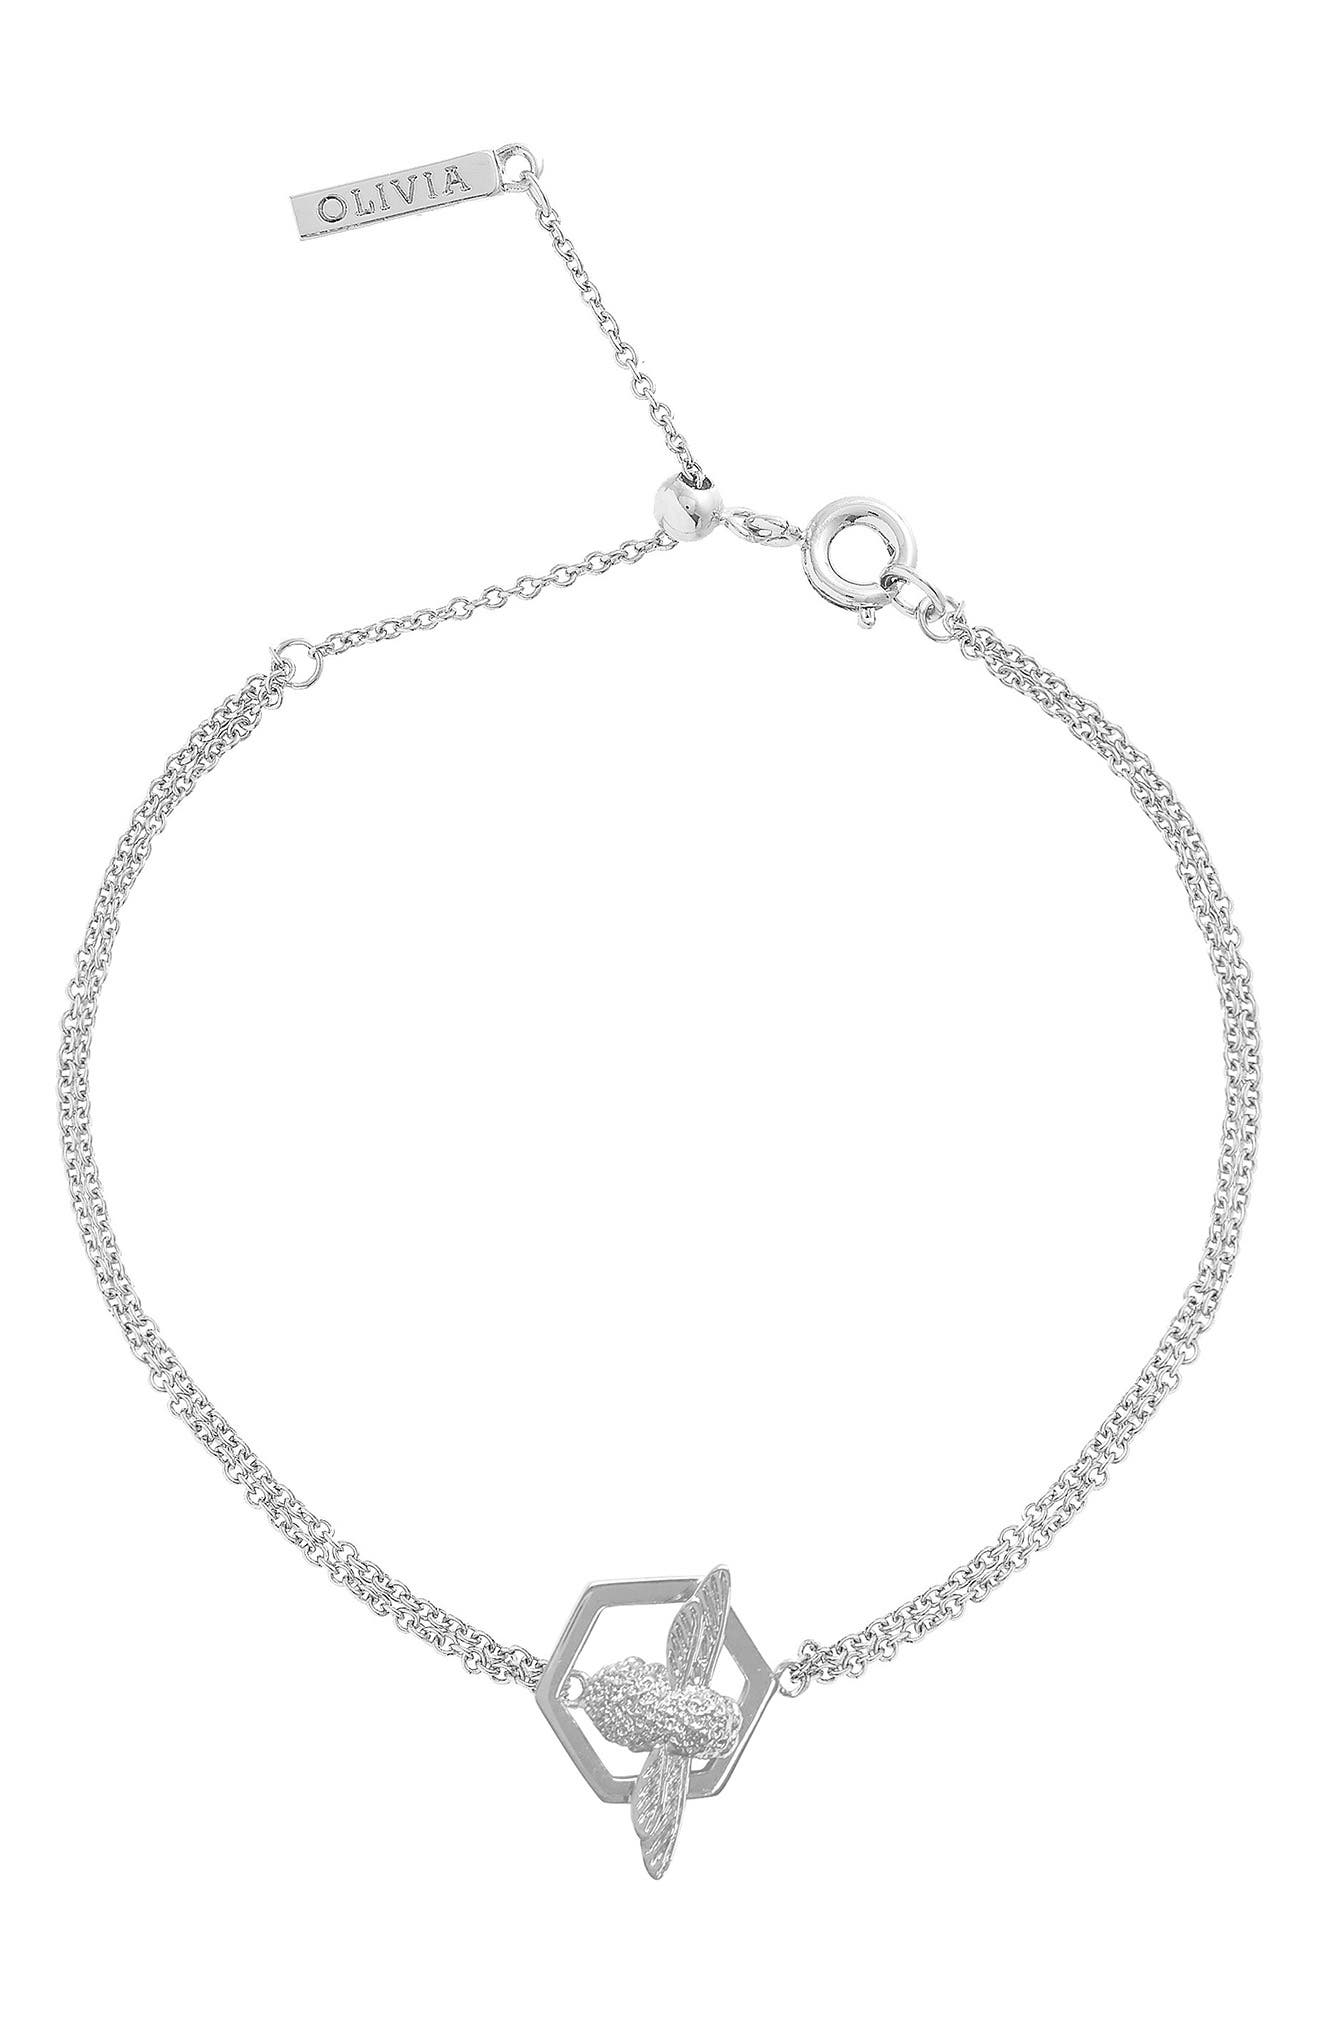 Honeycomb Bee Chain Bracelet,                             Alternate thumbnail 4, color,                             SILVER